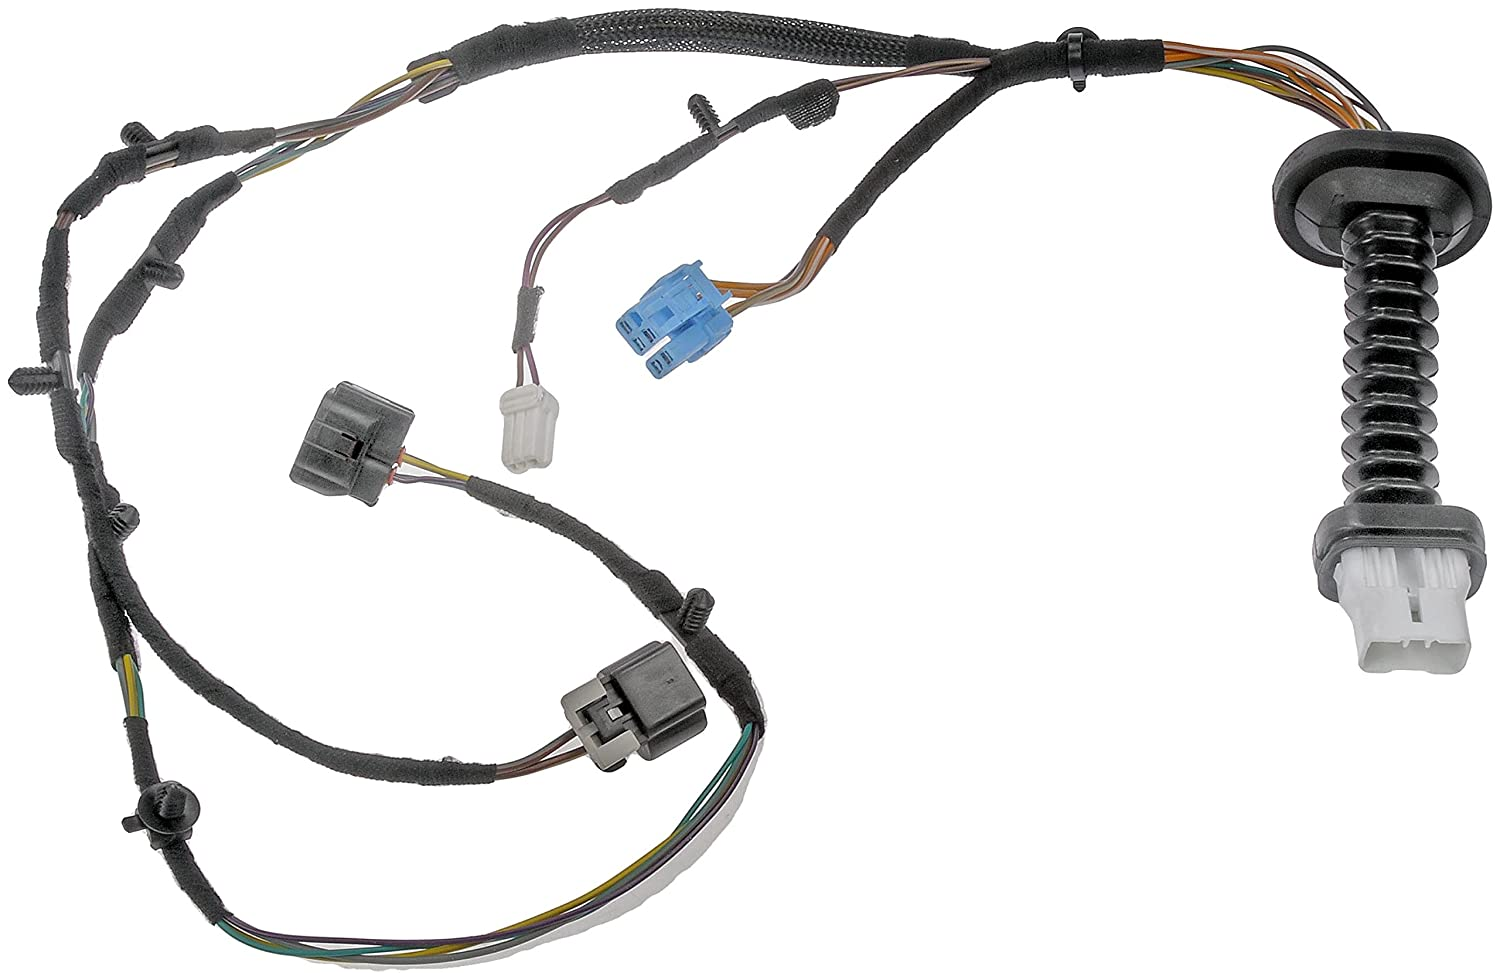 81c1LCEp7lL._SL1500_ amazon com dorman 645 506 door harness with connectors automotive Dodge Transmission Wiring Harness at mifinder.co